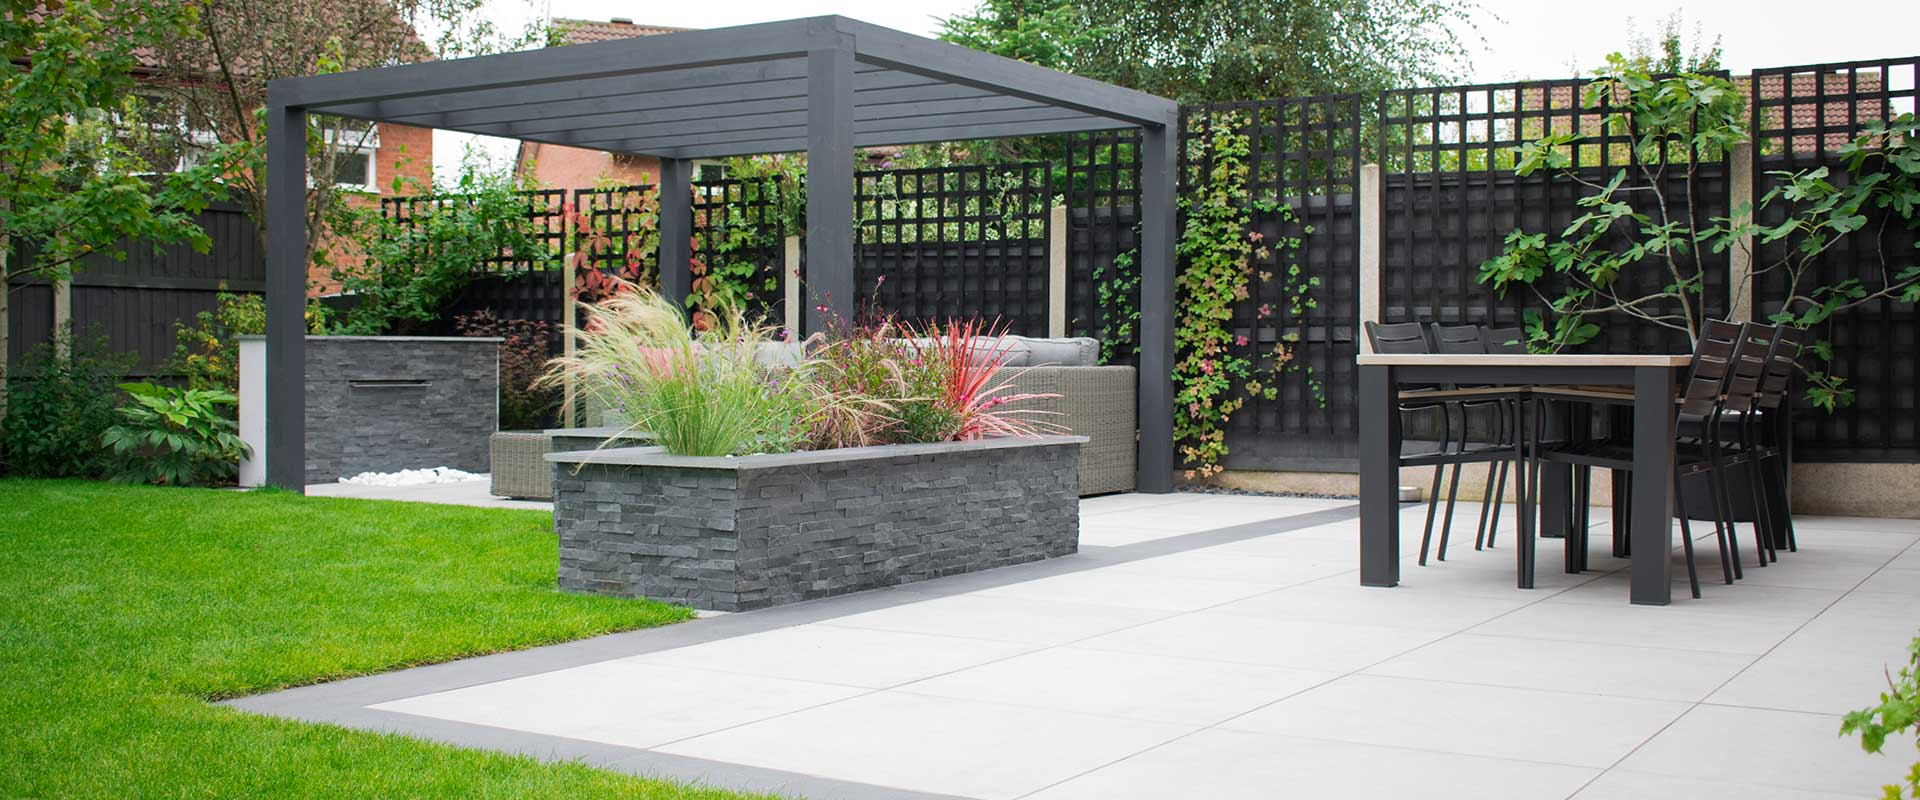 Urban Living Garden Project by Landscapia